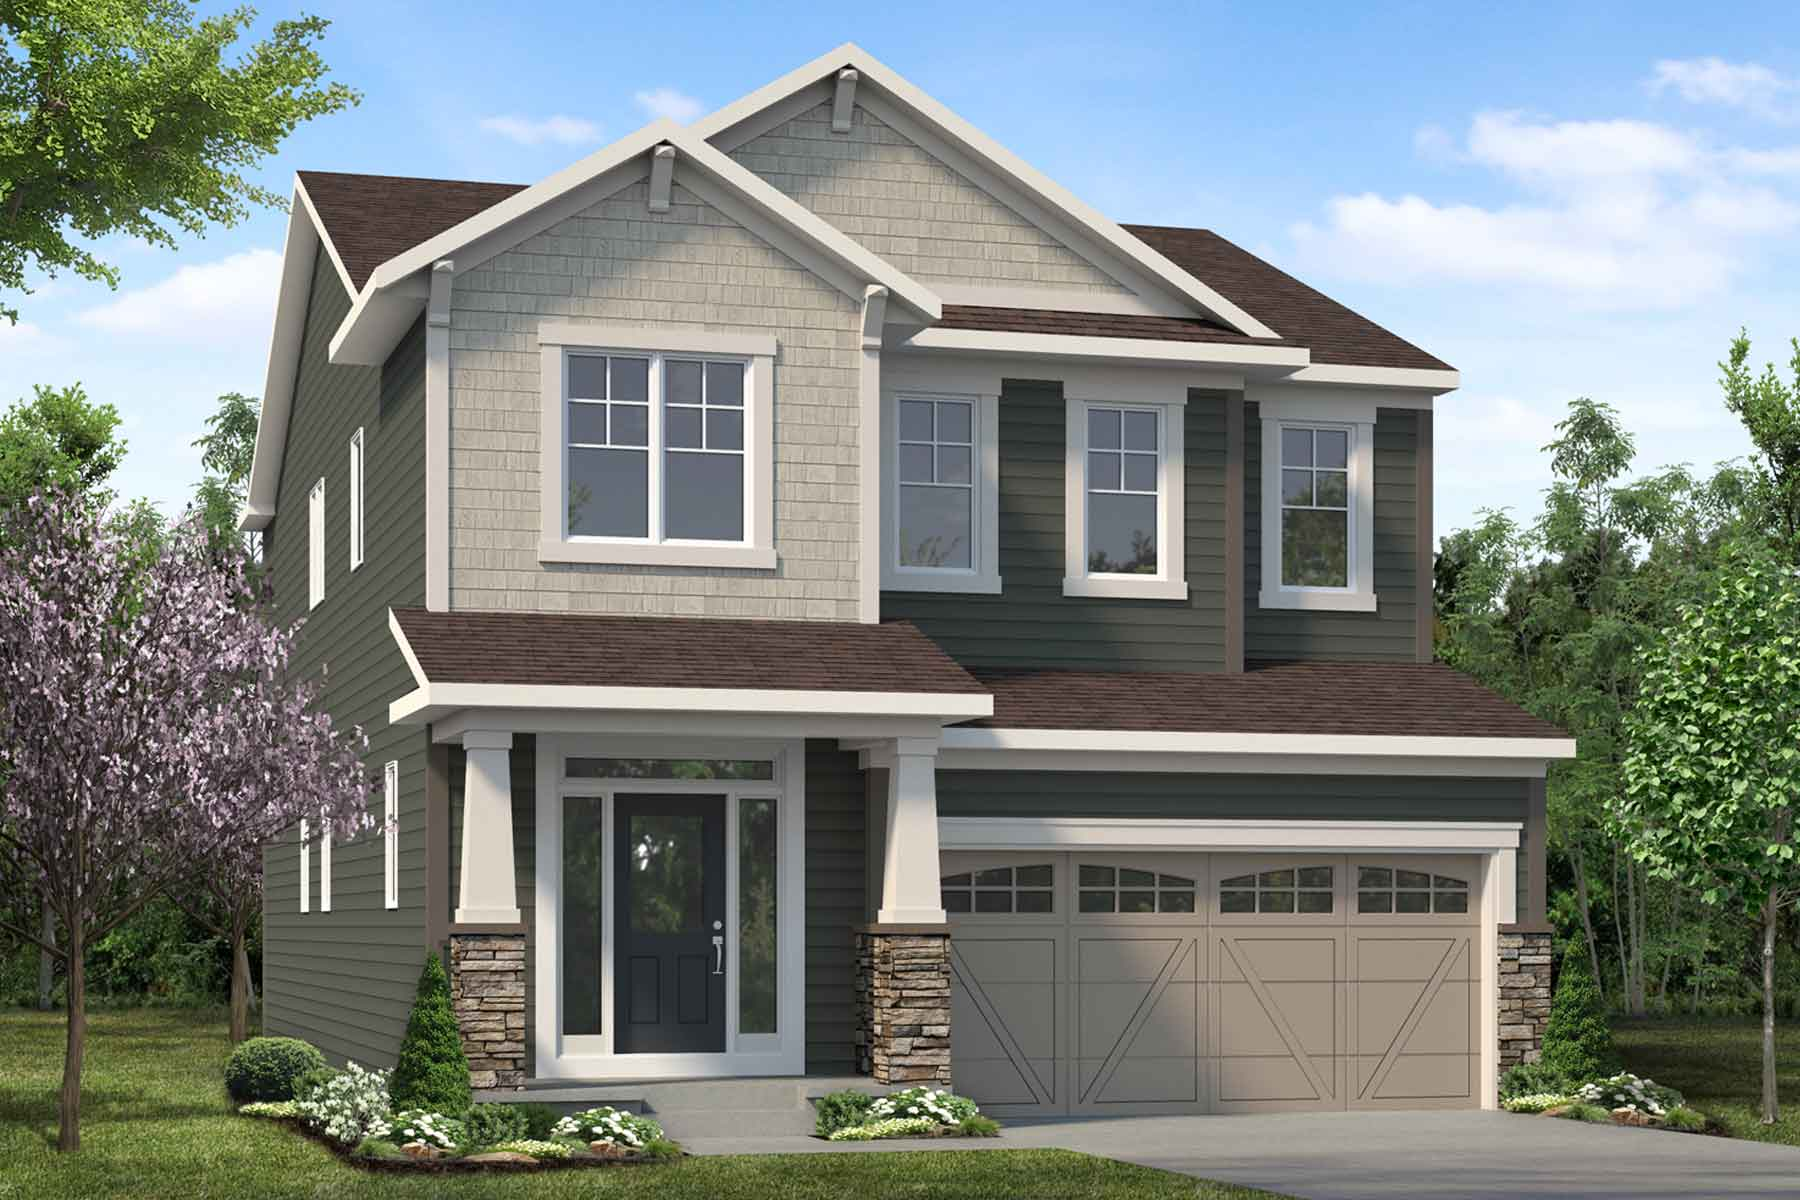 Slate Plan elevationcraftsman_southwinds_slate_main at Southwinds in Airdrie Alberta by Mattamy Homes